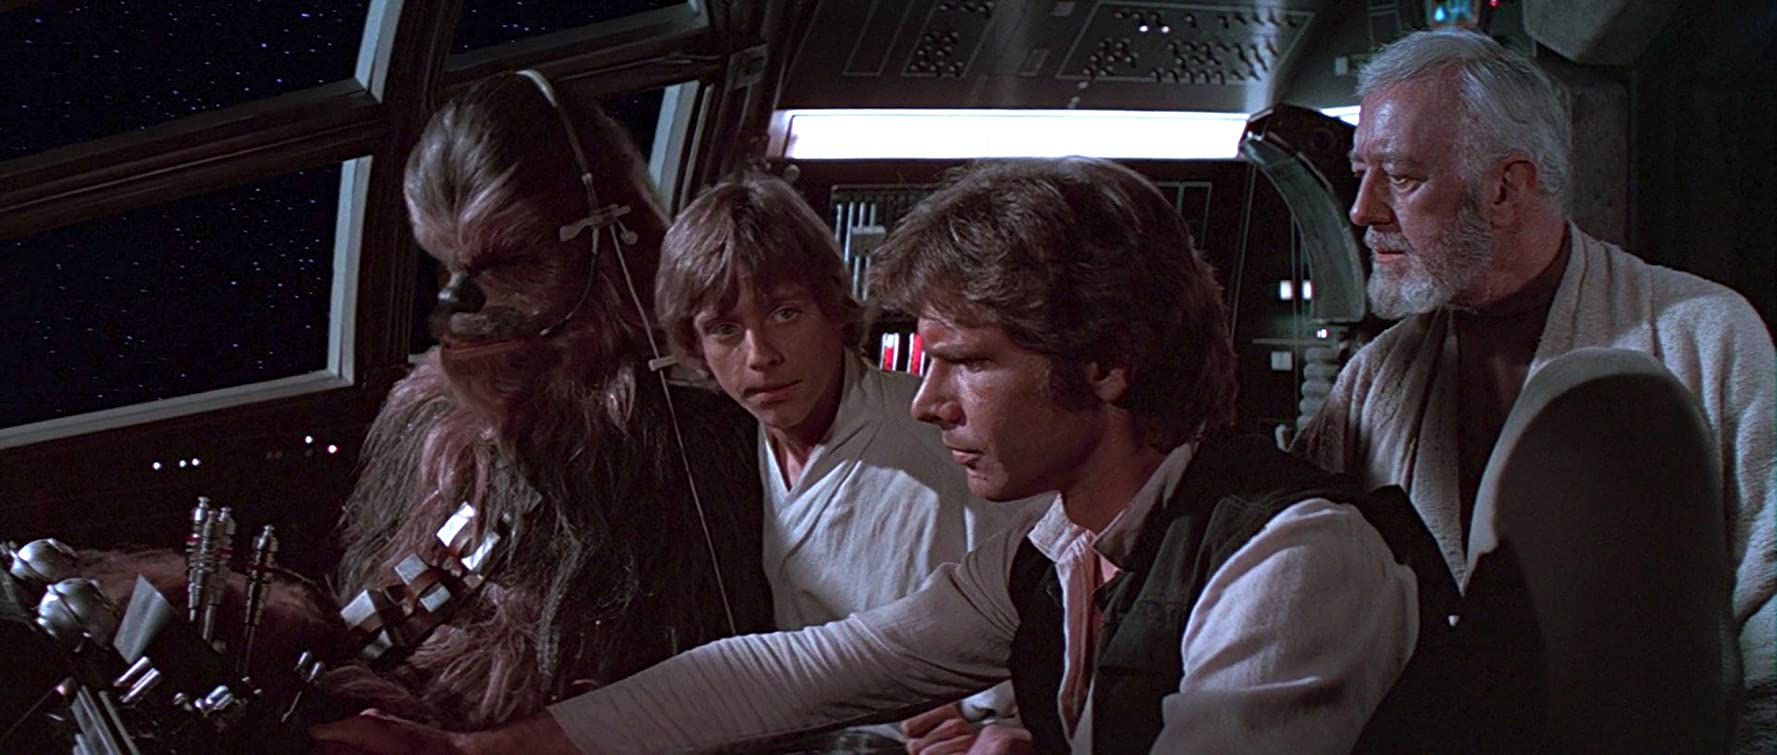 Alec Guinness, Harrison Ford, Mark Hamill, and Peter Mayhew in Star Wars (1977)